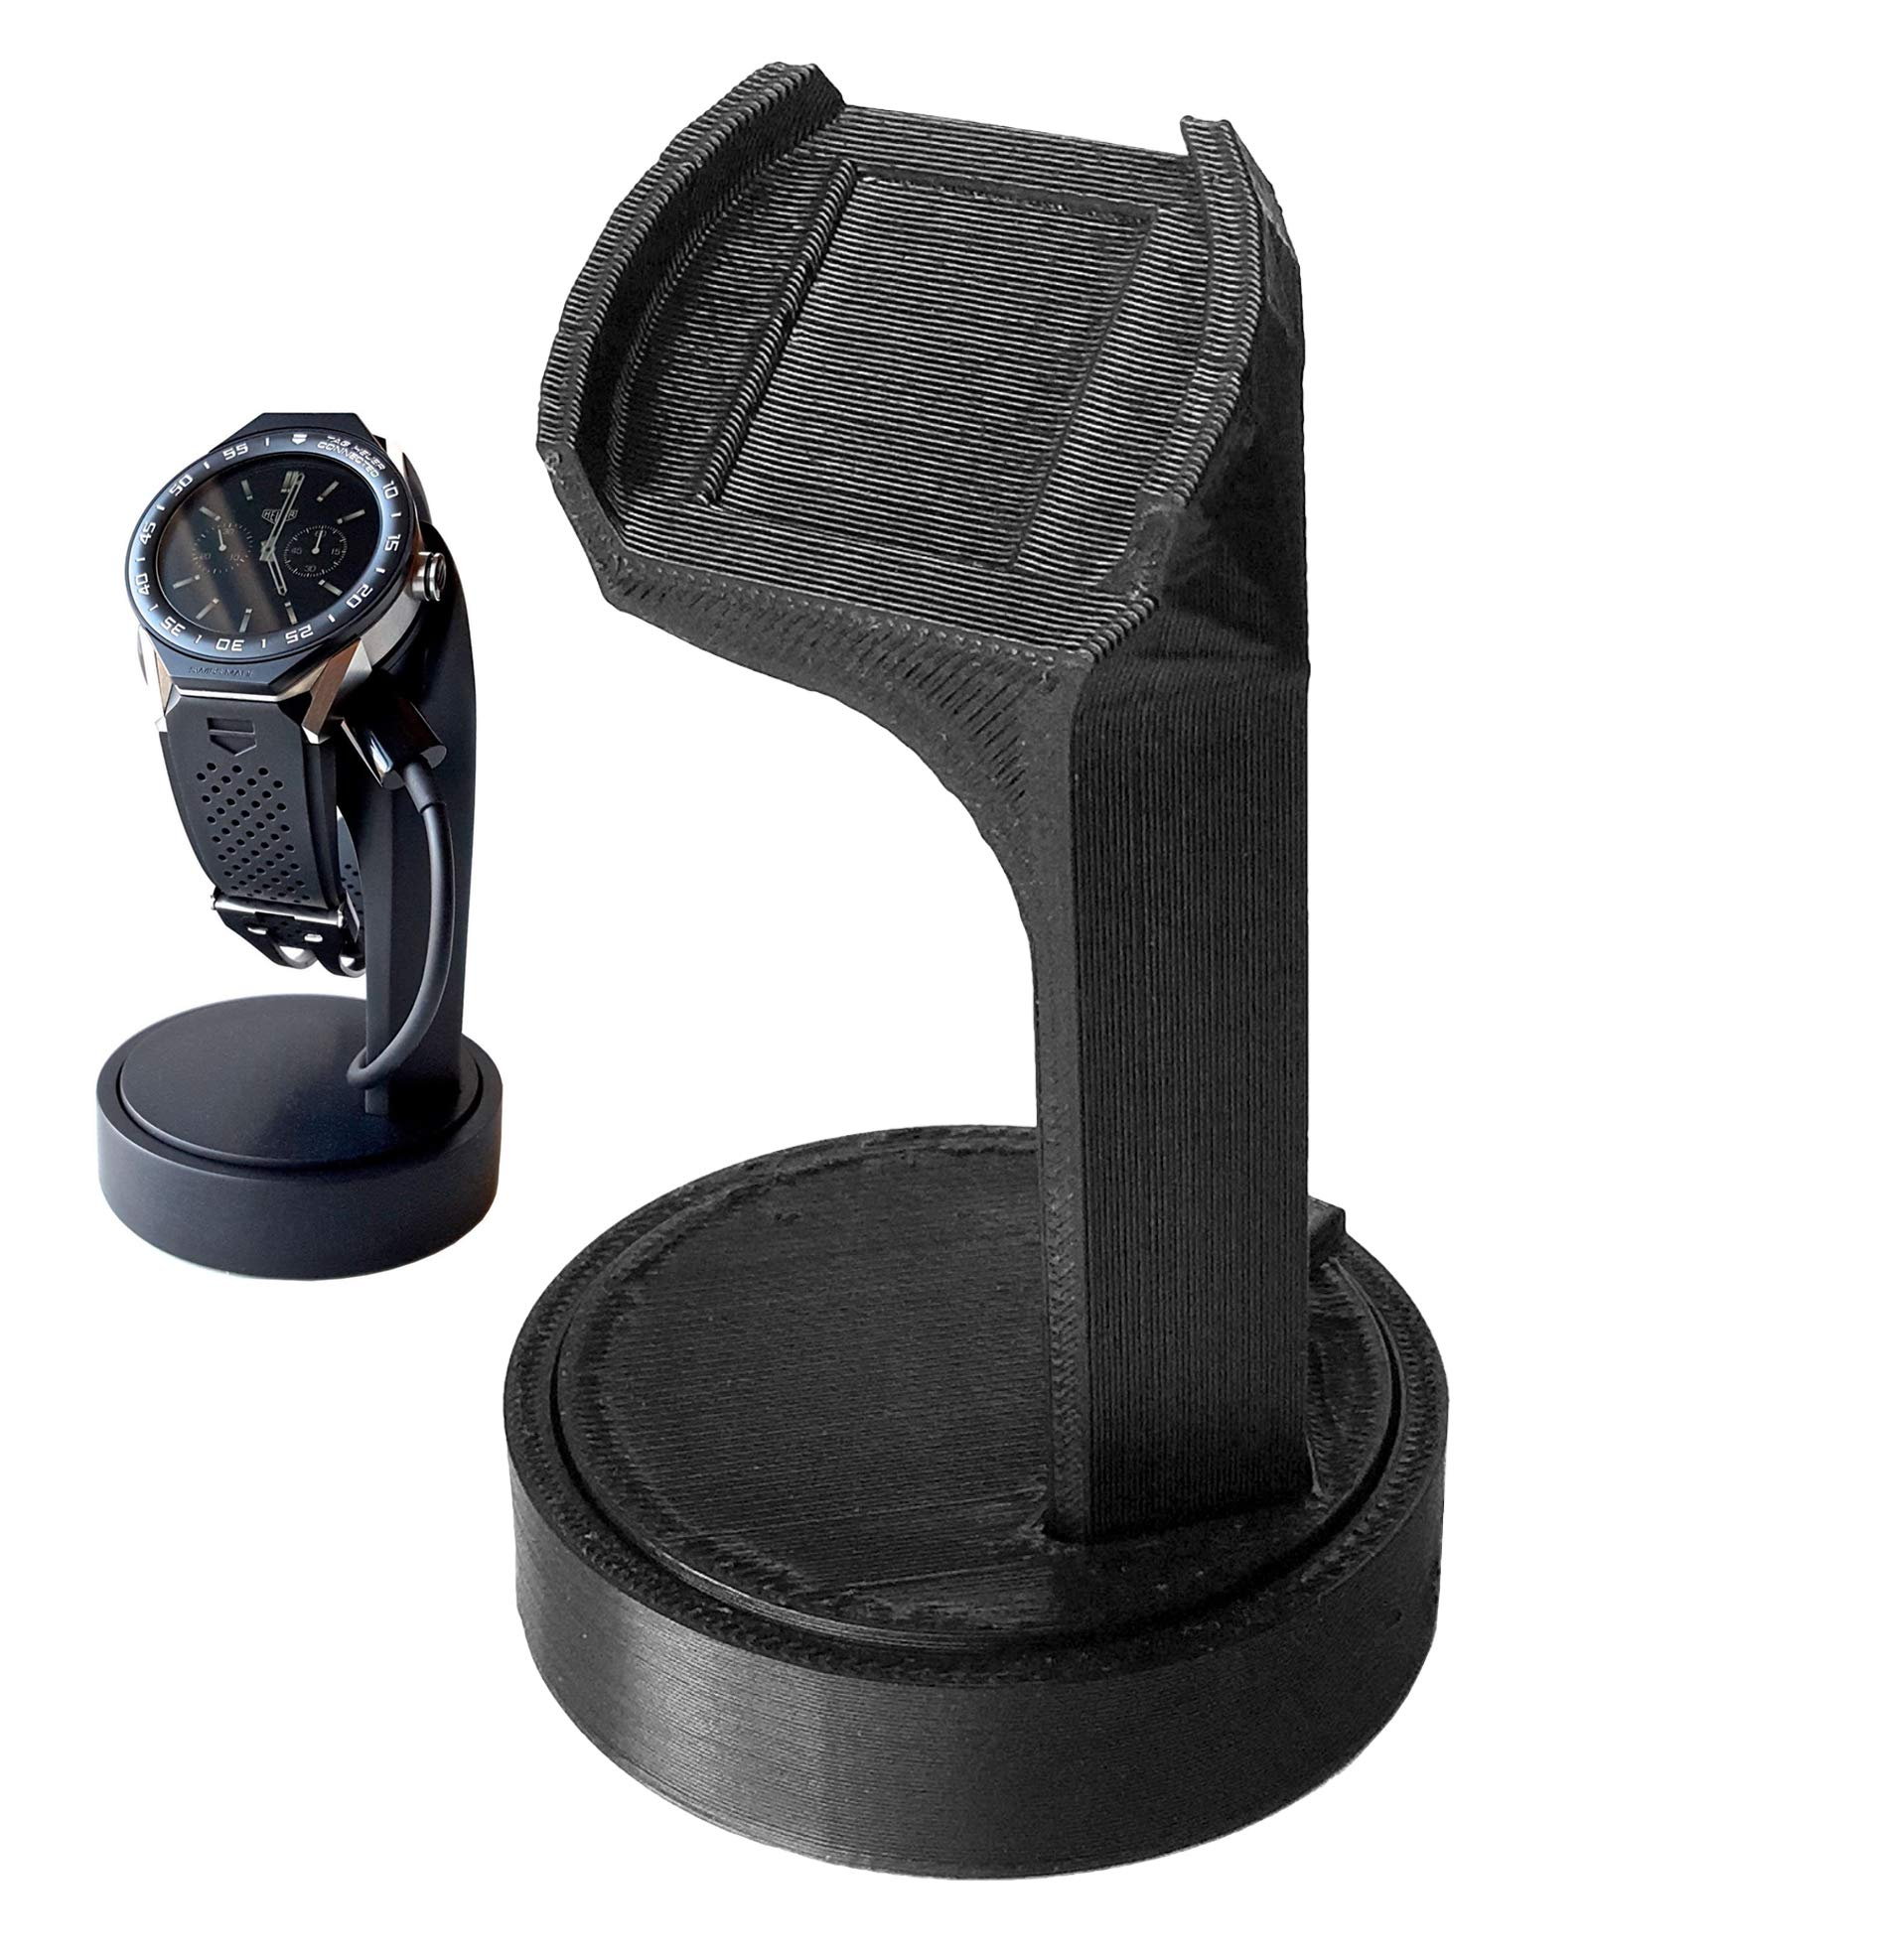 Zweisimmen Hammermill Vintage Co. 2nd Generation TAG Heuer Connected Modular 45 Smart Watch Charging Stand for OEM Charger (3D Printed Version)